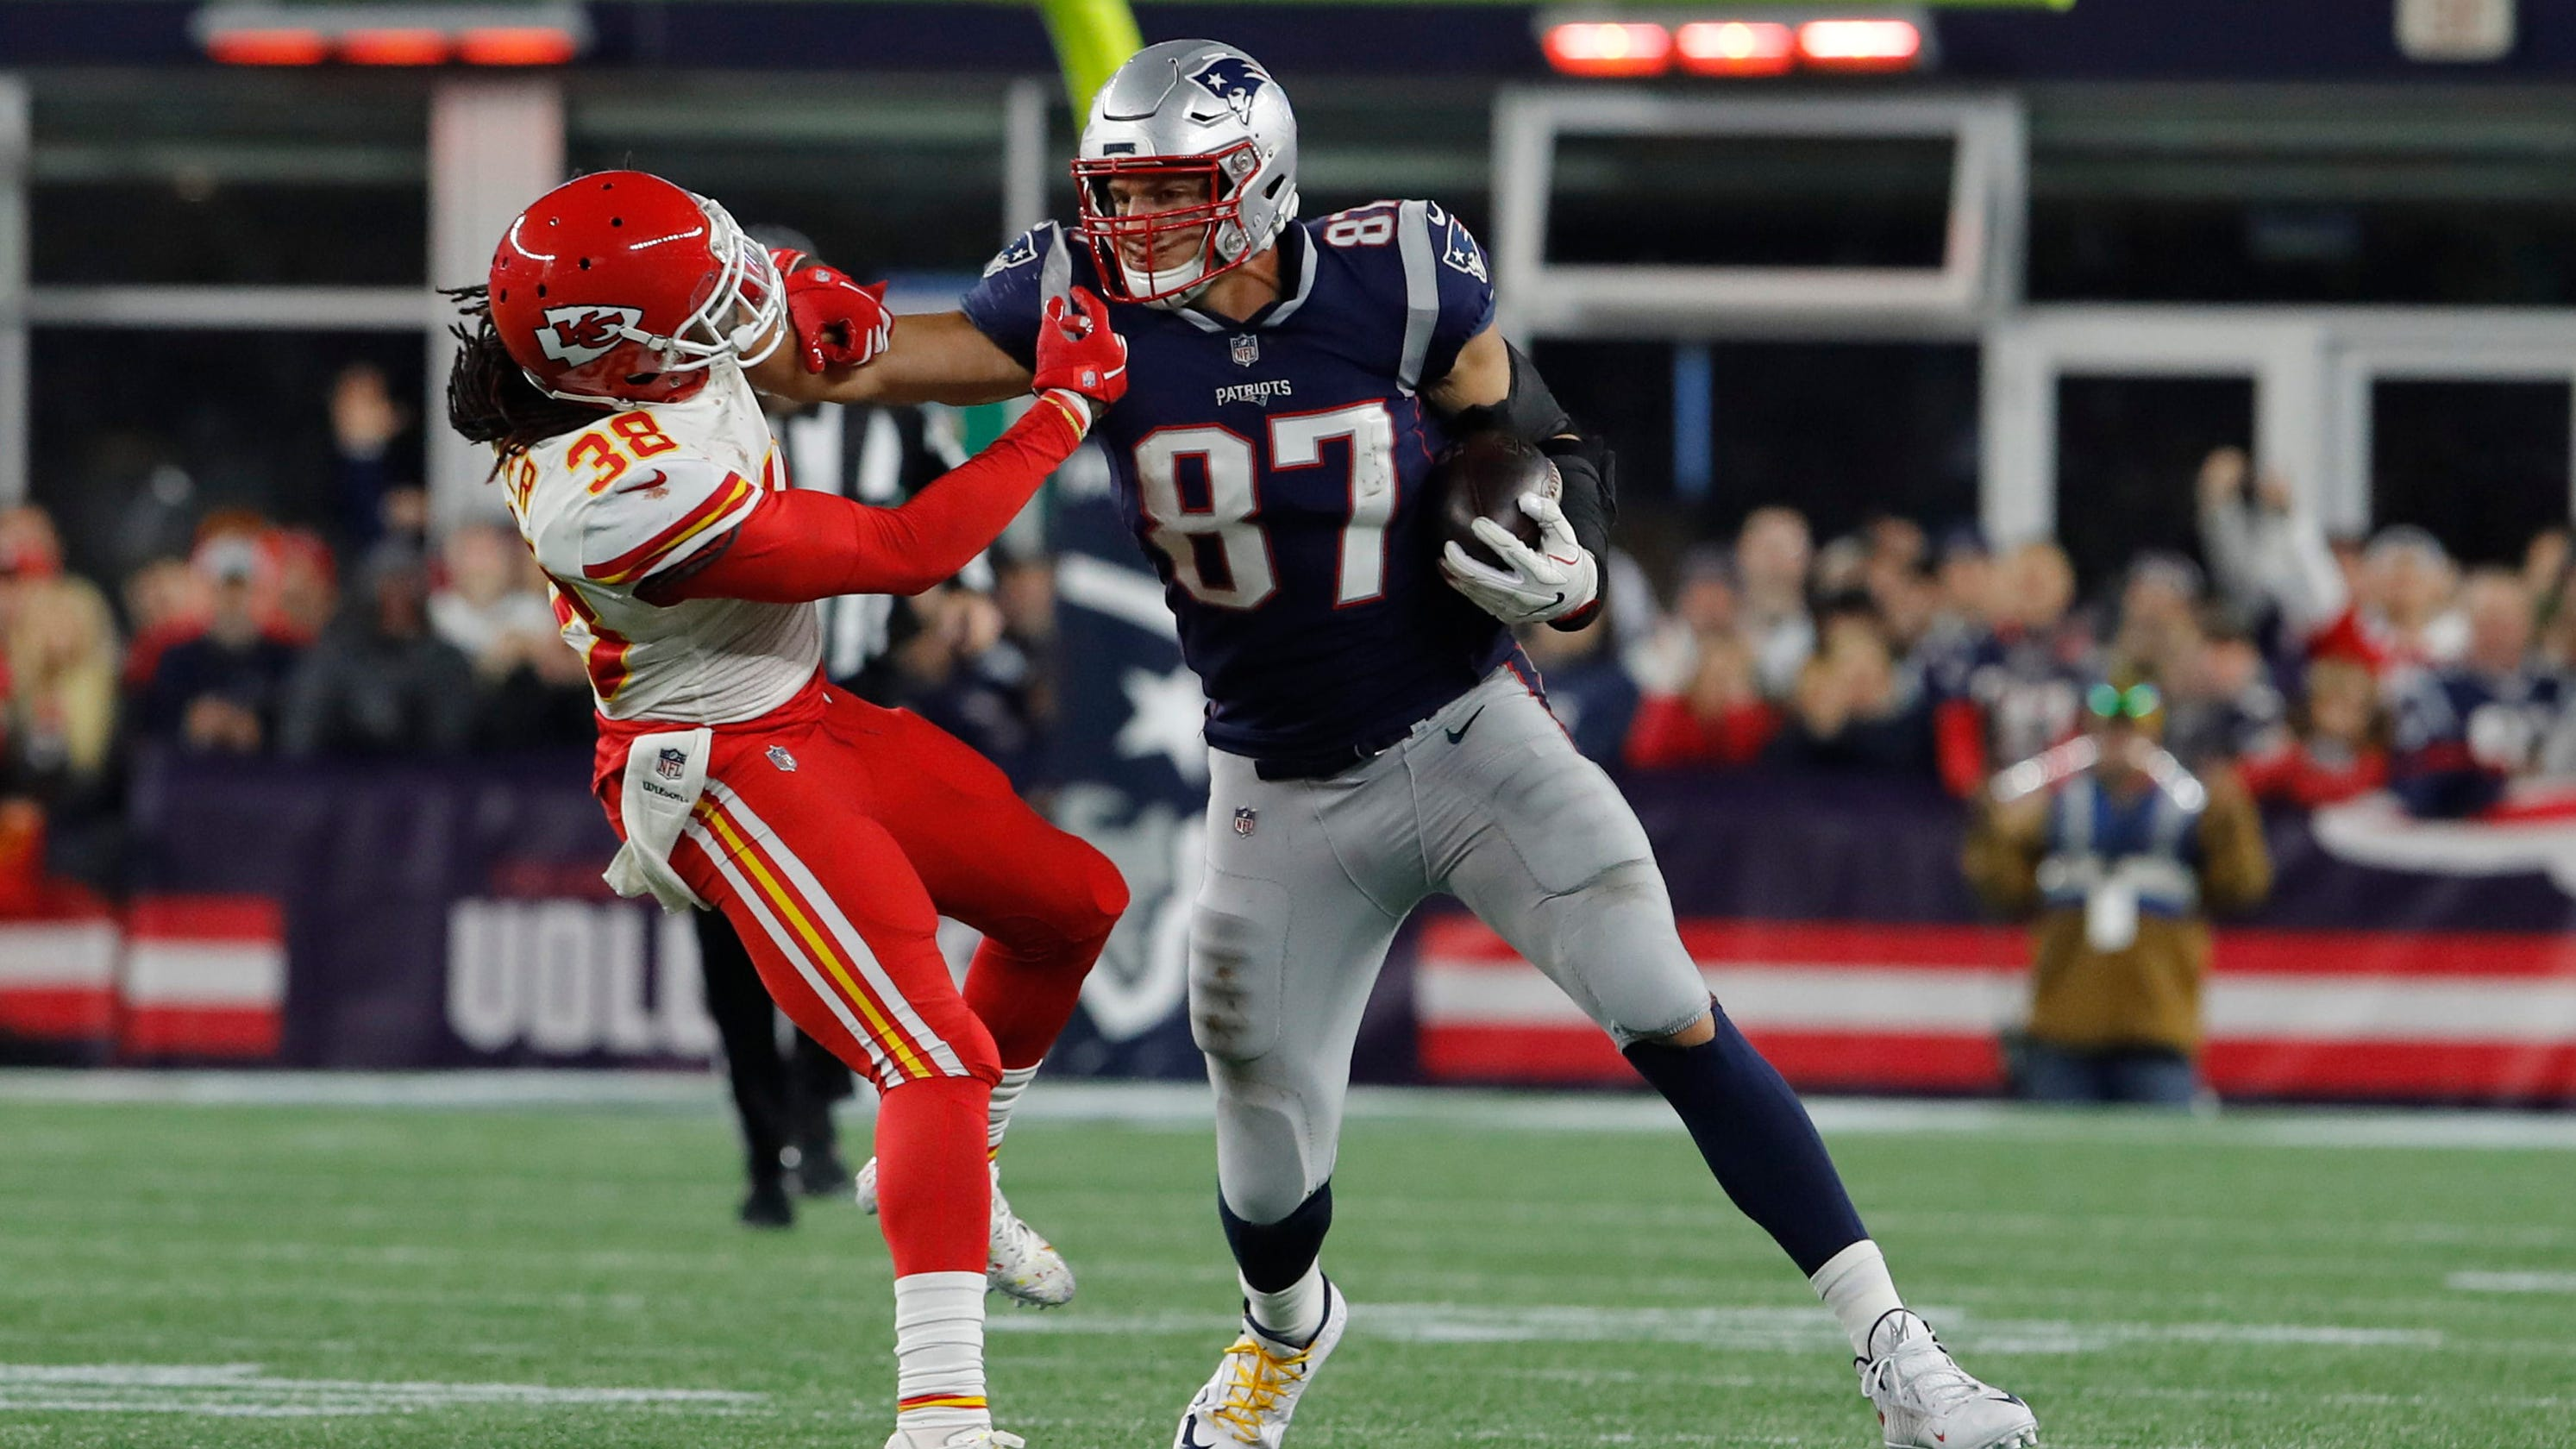 c96600519 NFL schedule: Times, TV channels, streaming for conference title games